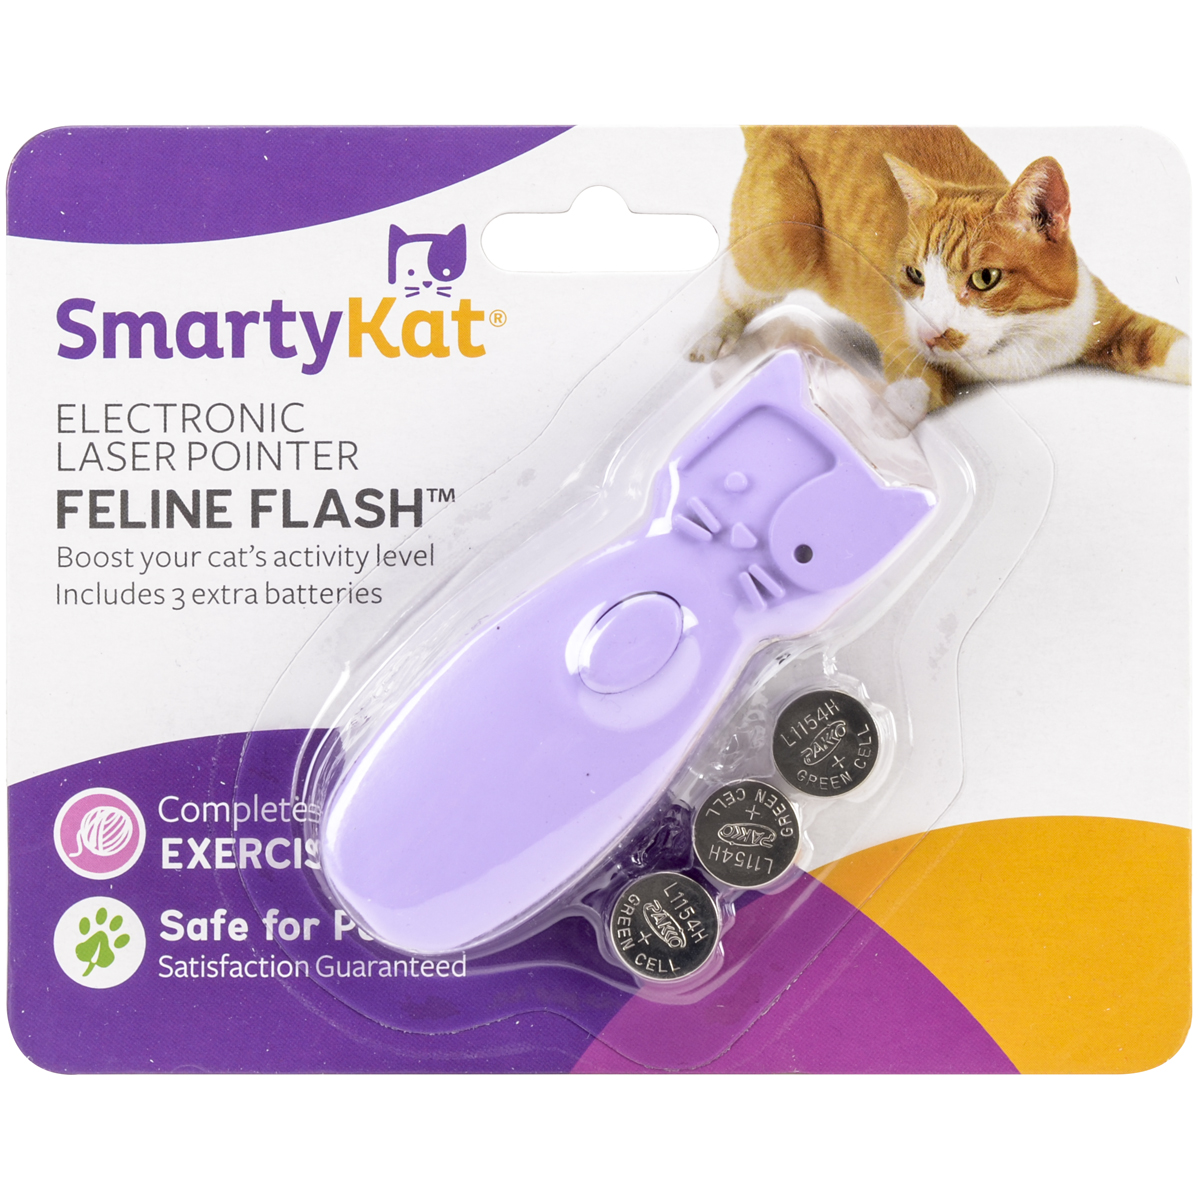 SmartyKat Feline Flash Electronic Laser Pointer Cat Toy